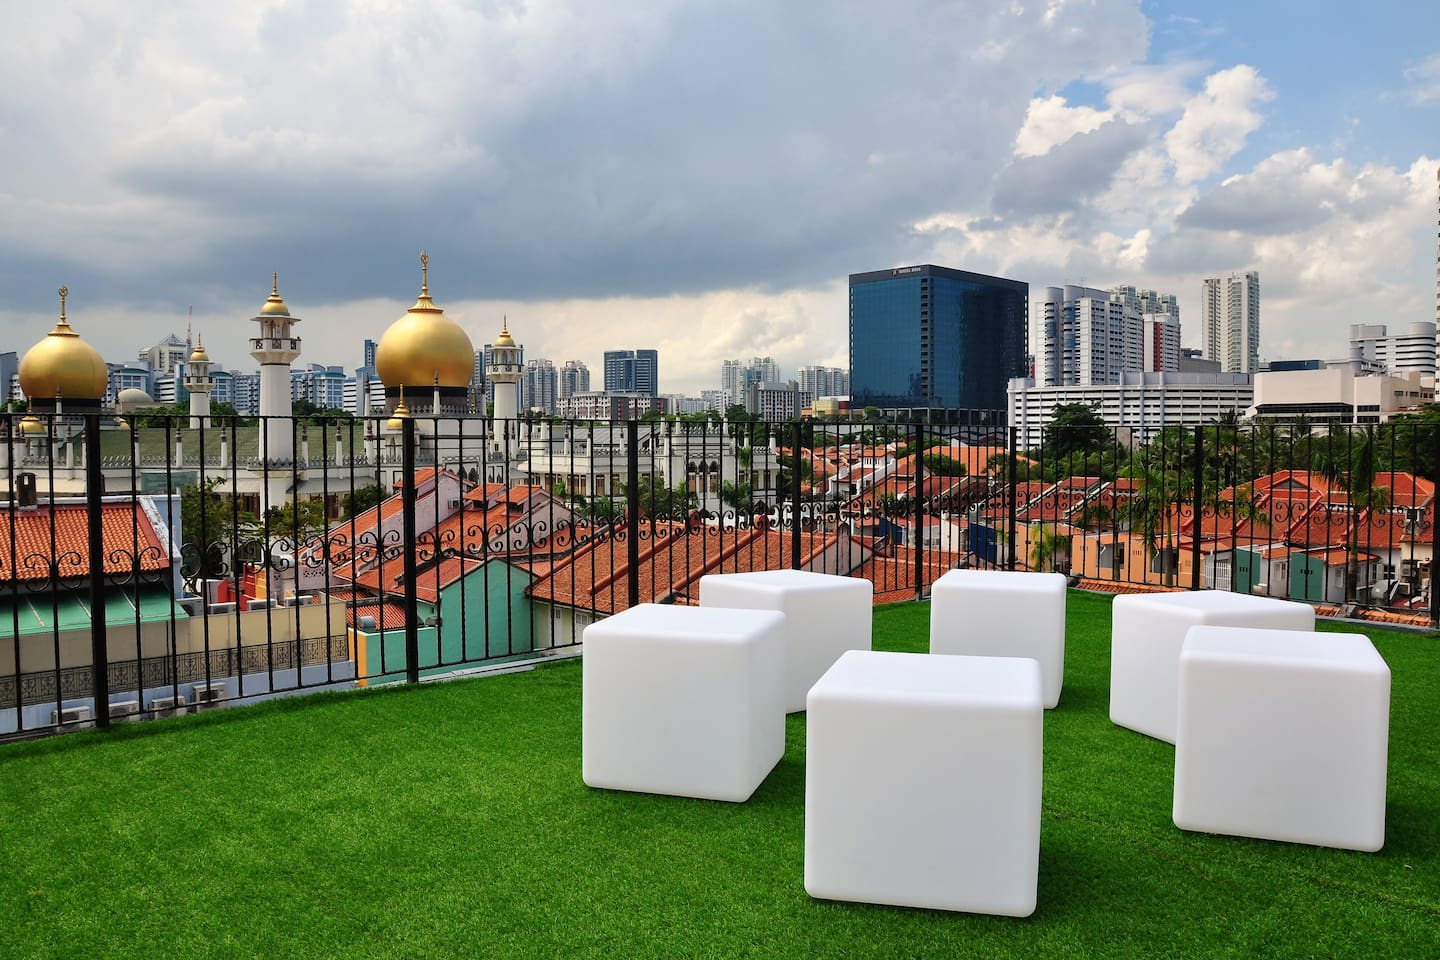 Rooftop offers a stunning panoramic view over Kampong Glam